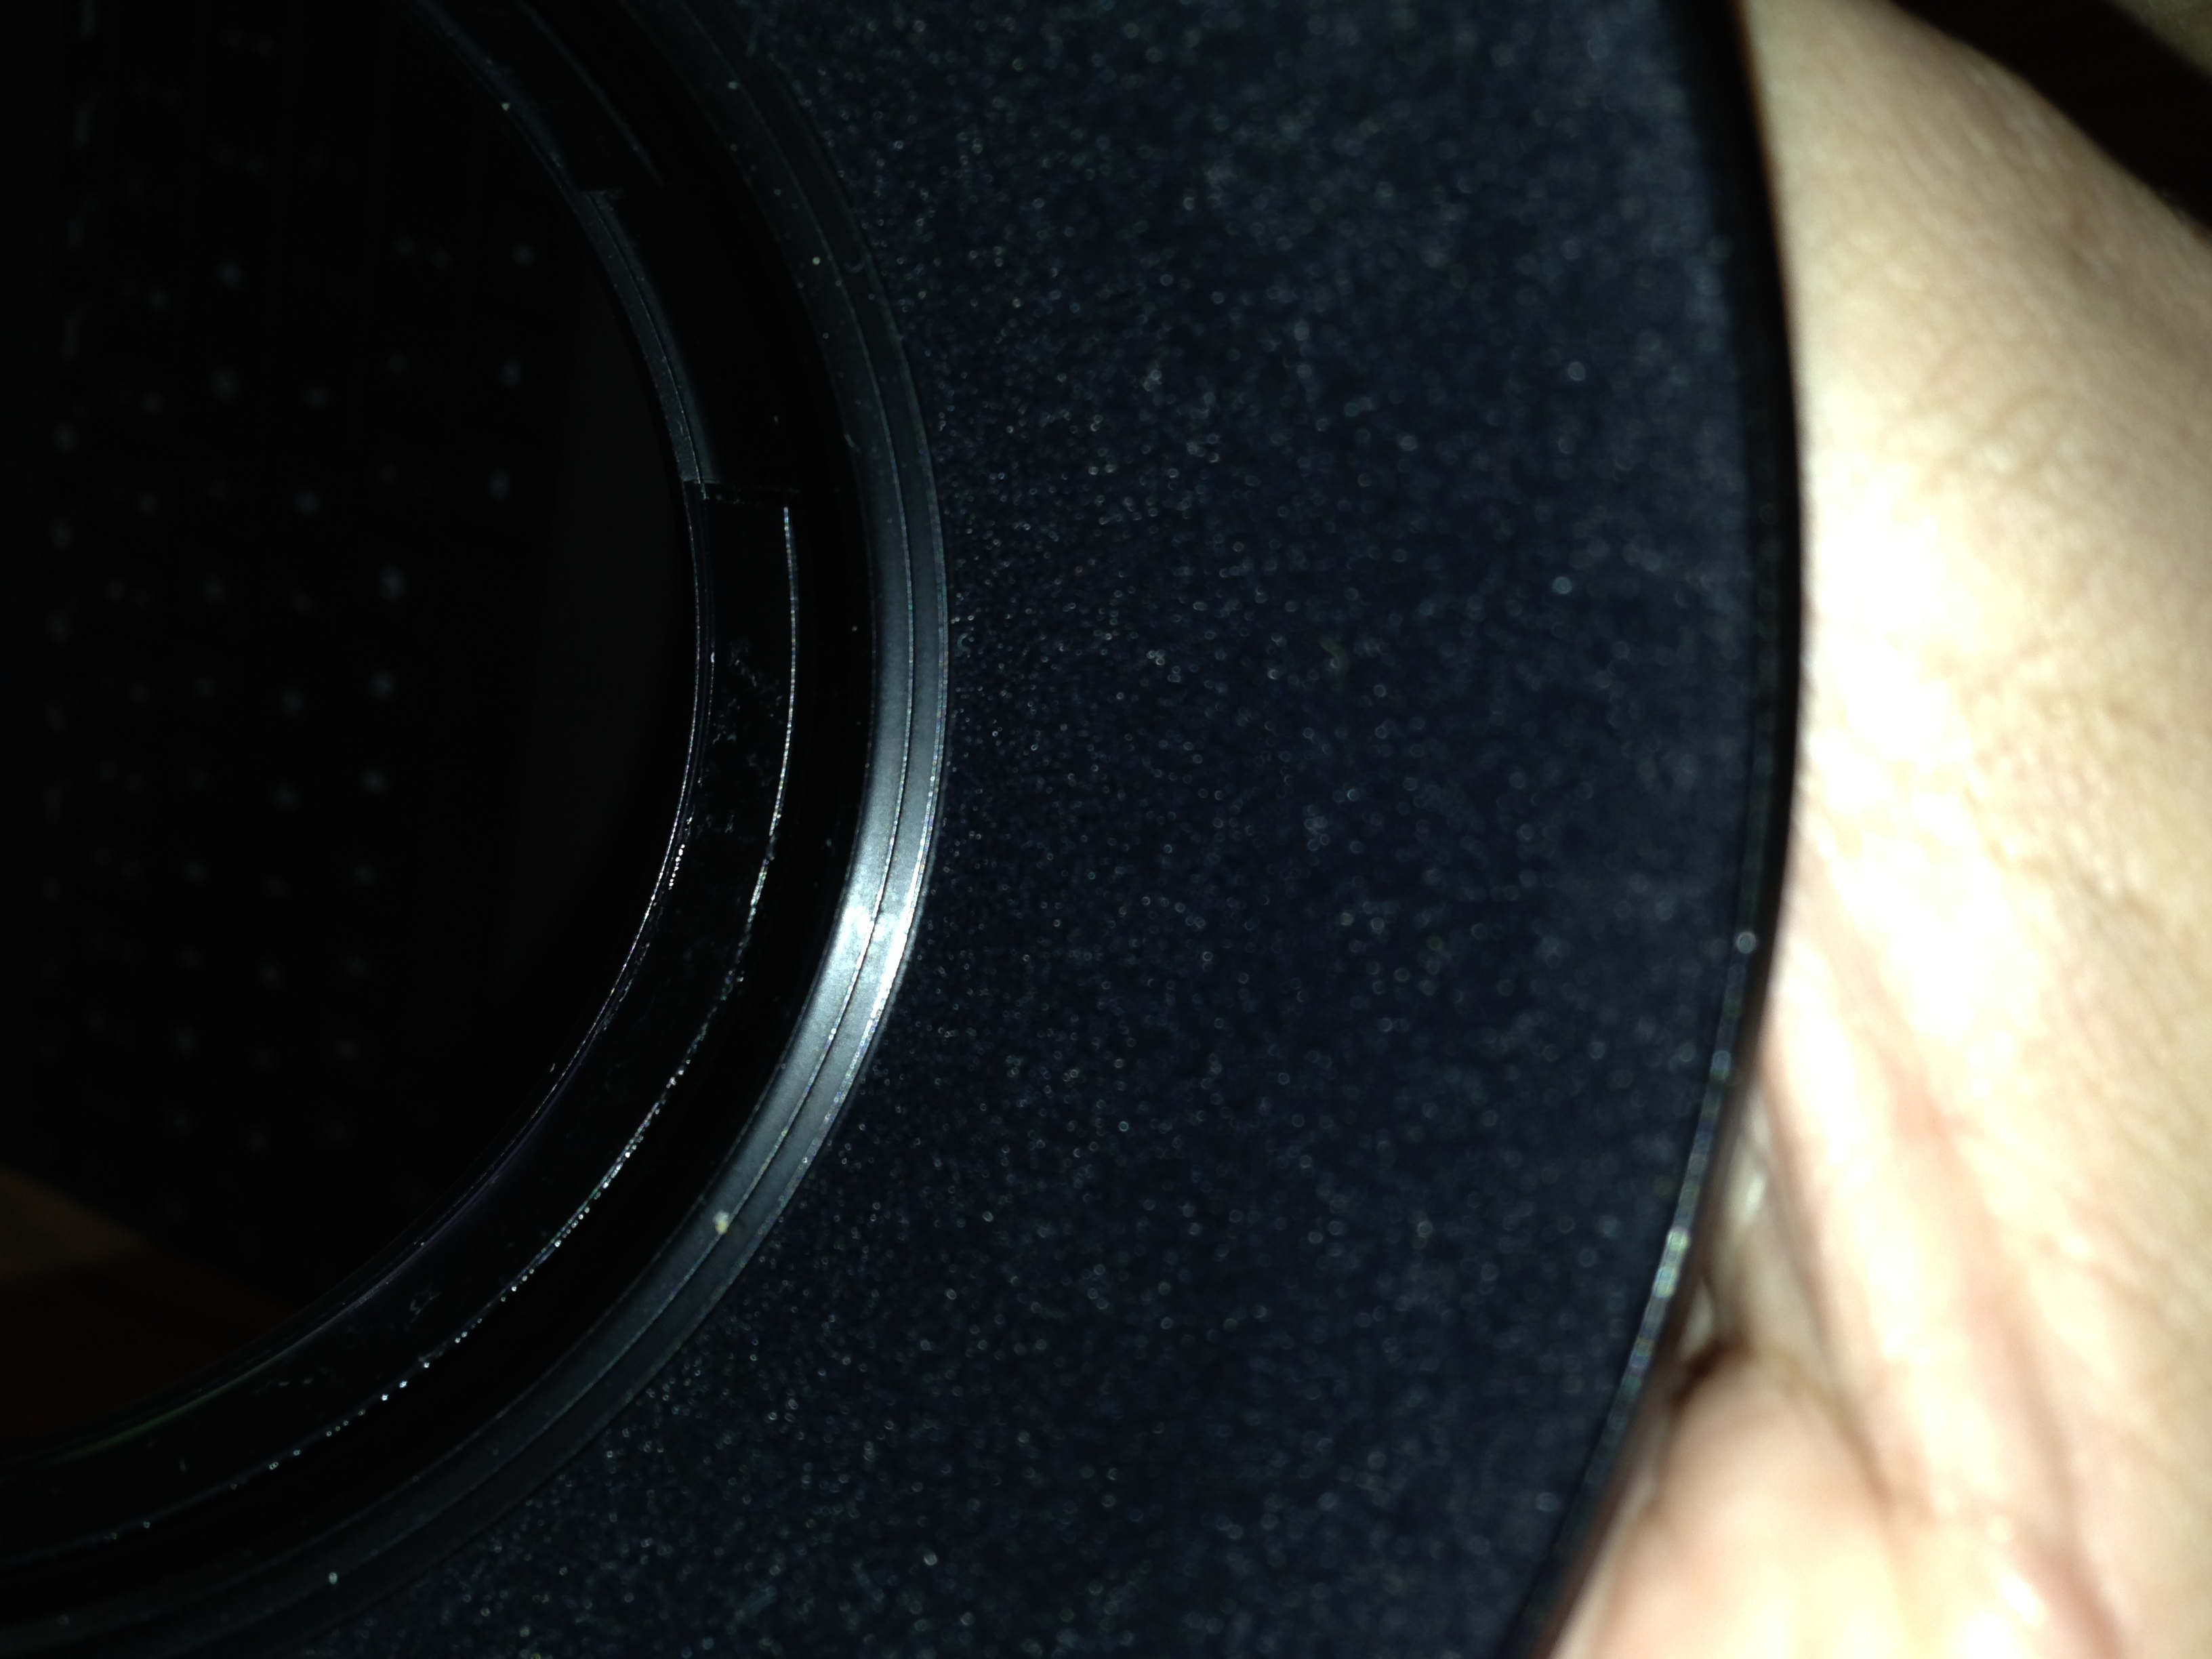 Inside the lens hood. You can see the tightening ring at the rear.